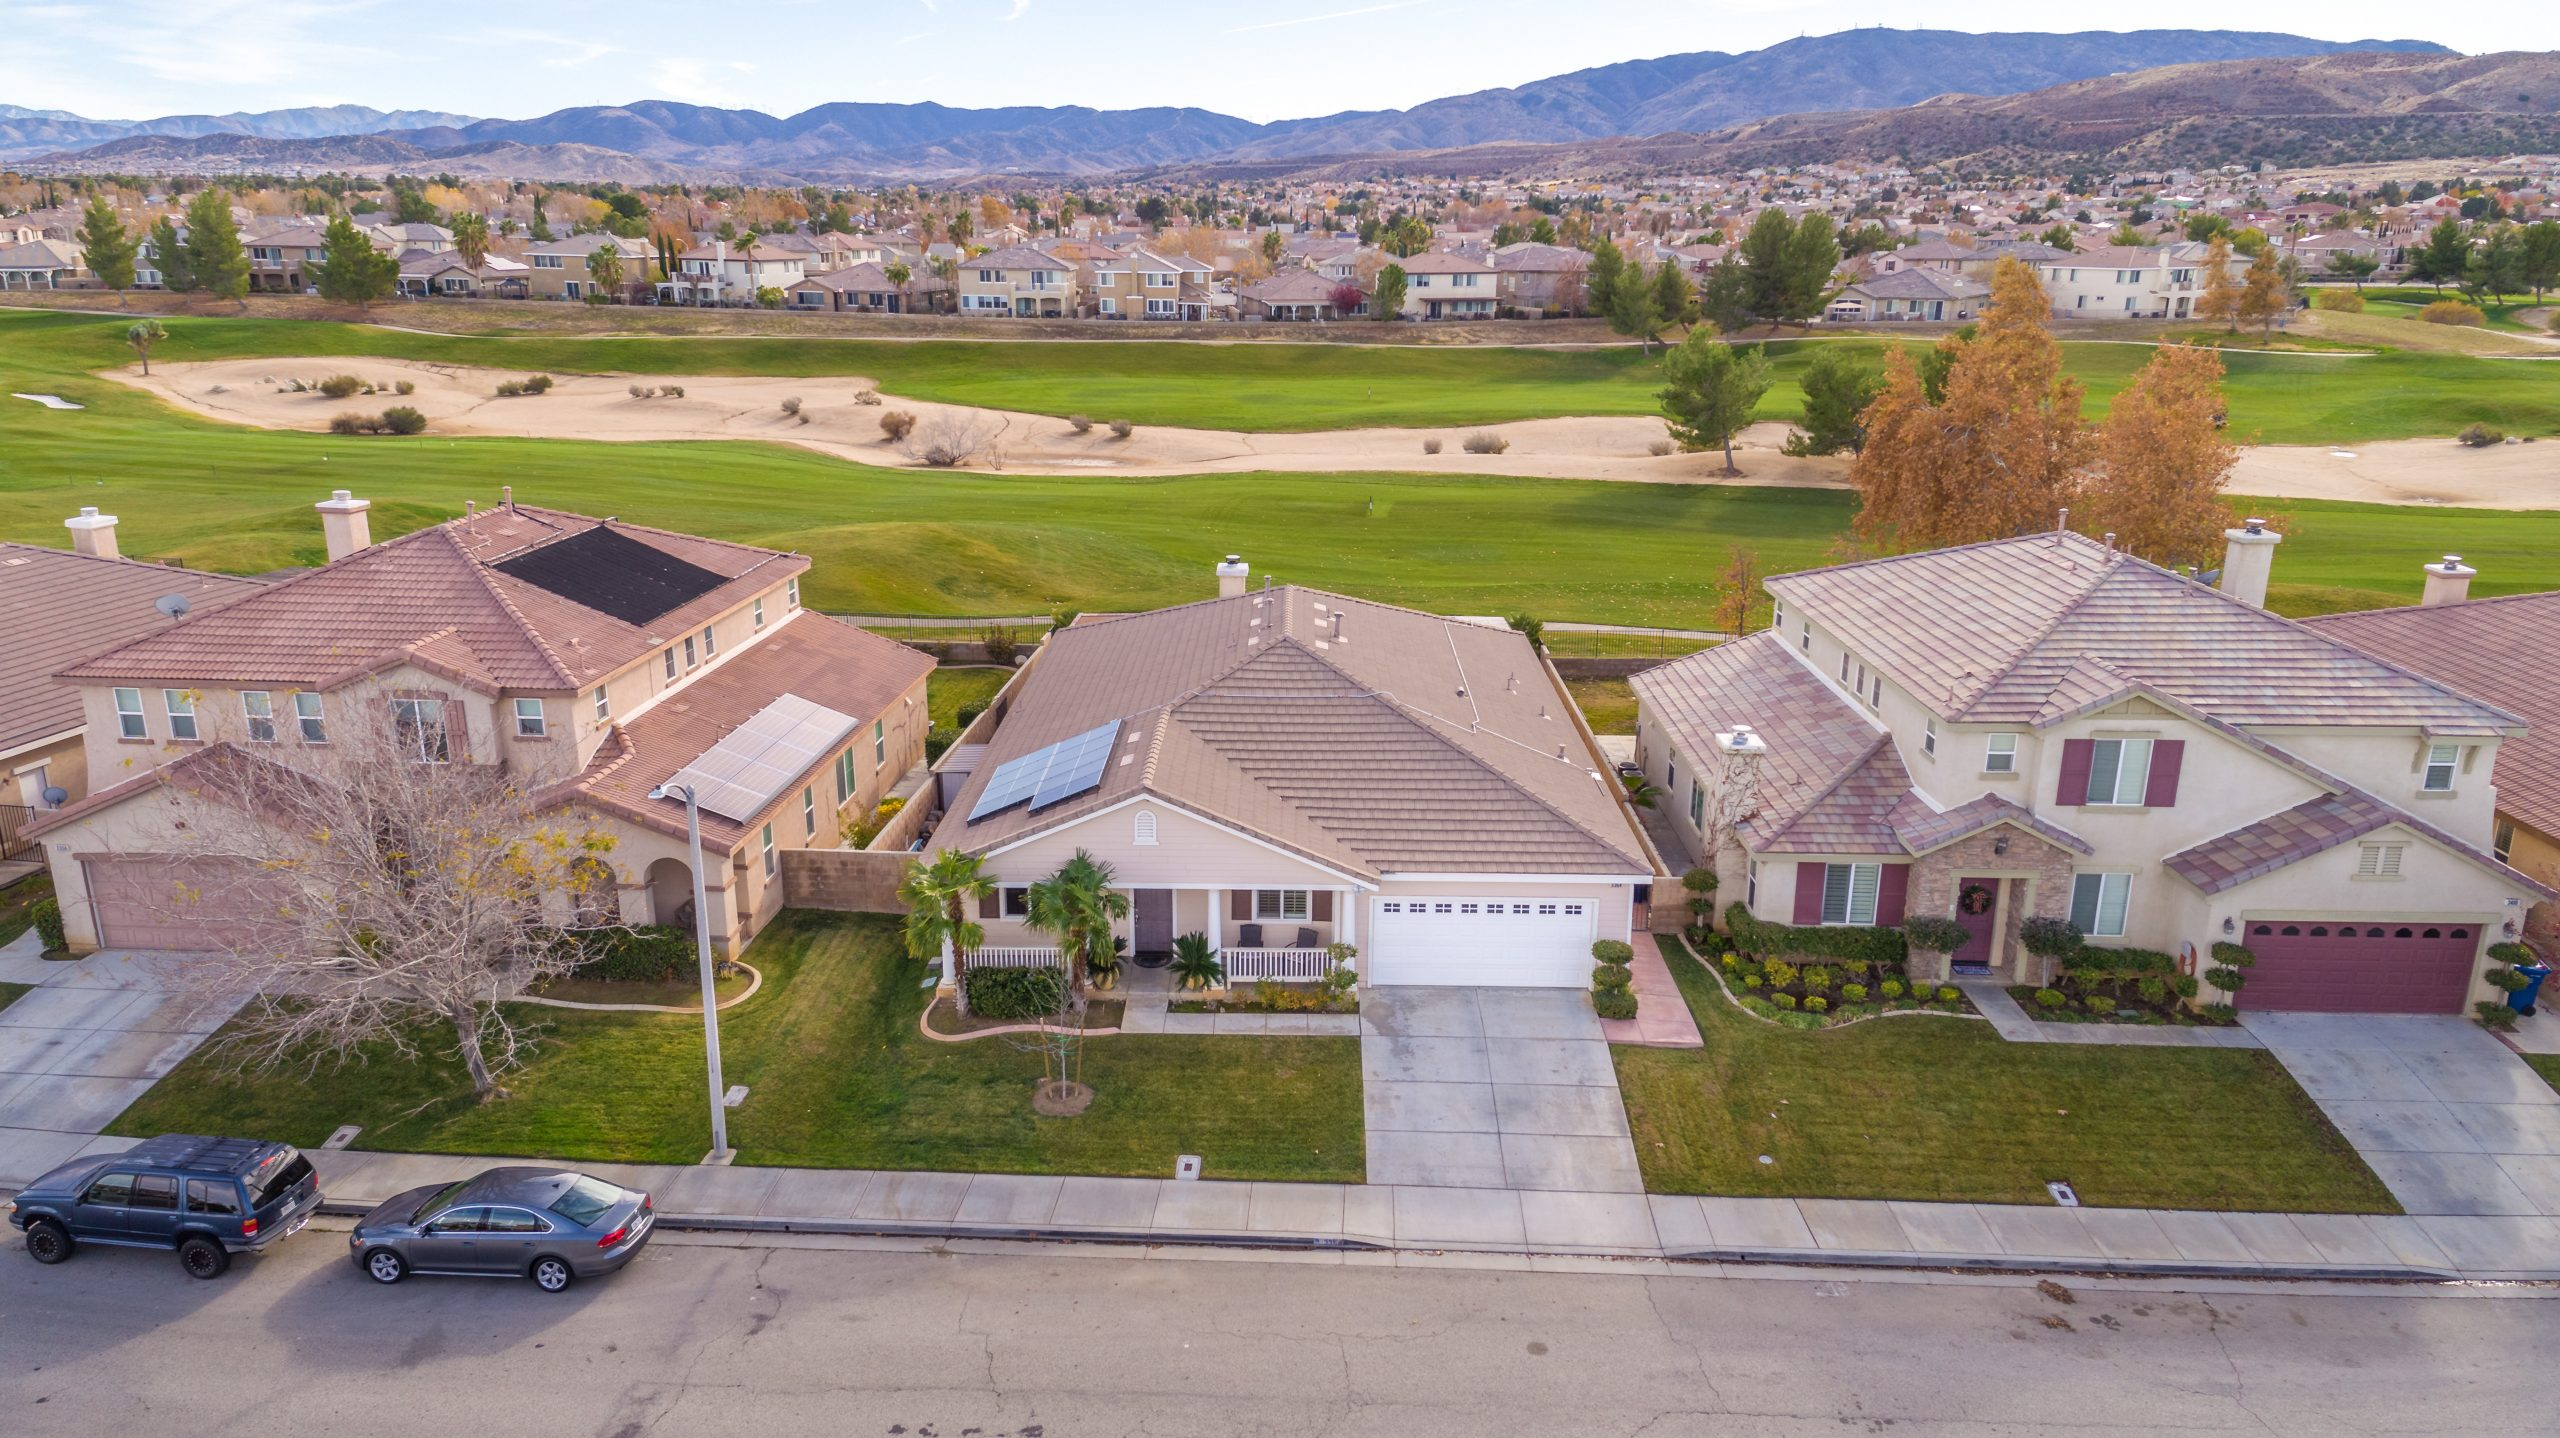 3364 Tournament Drive Palmdale CA 93551 Front Drone